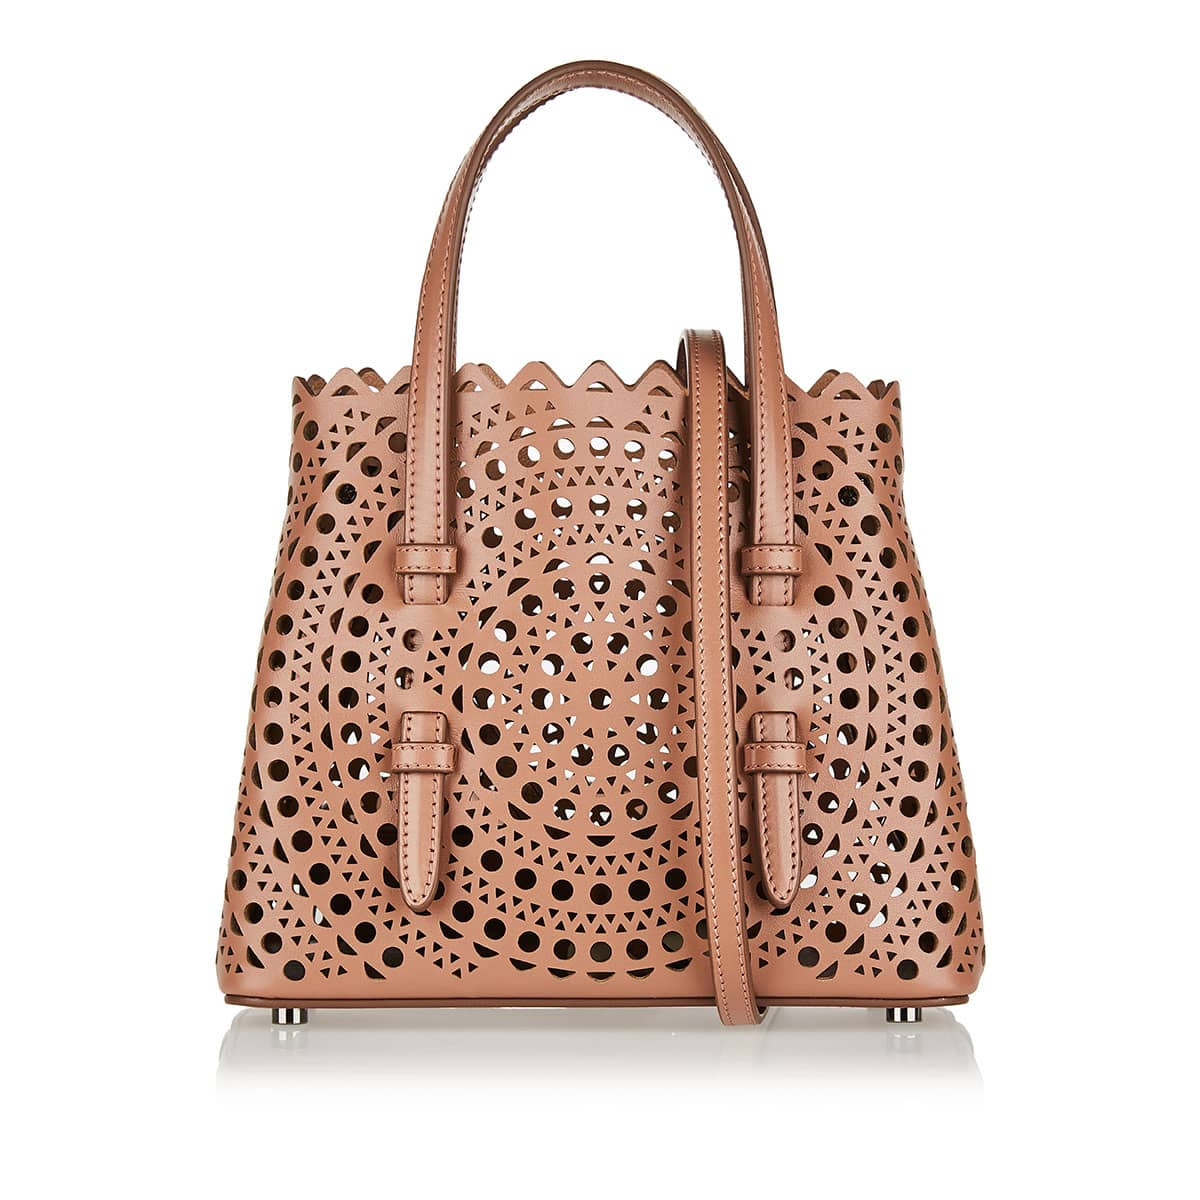 Micro laser-cut leather tote